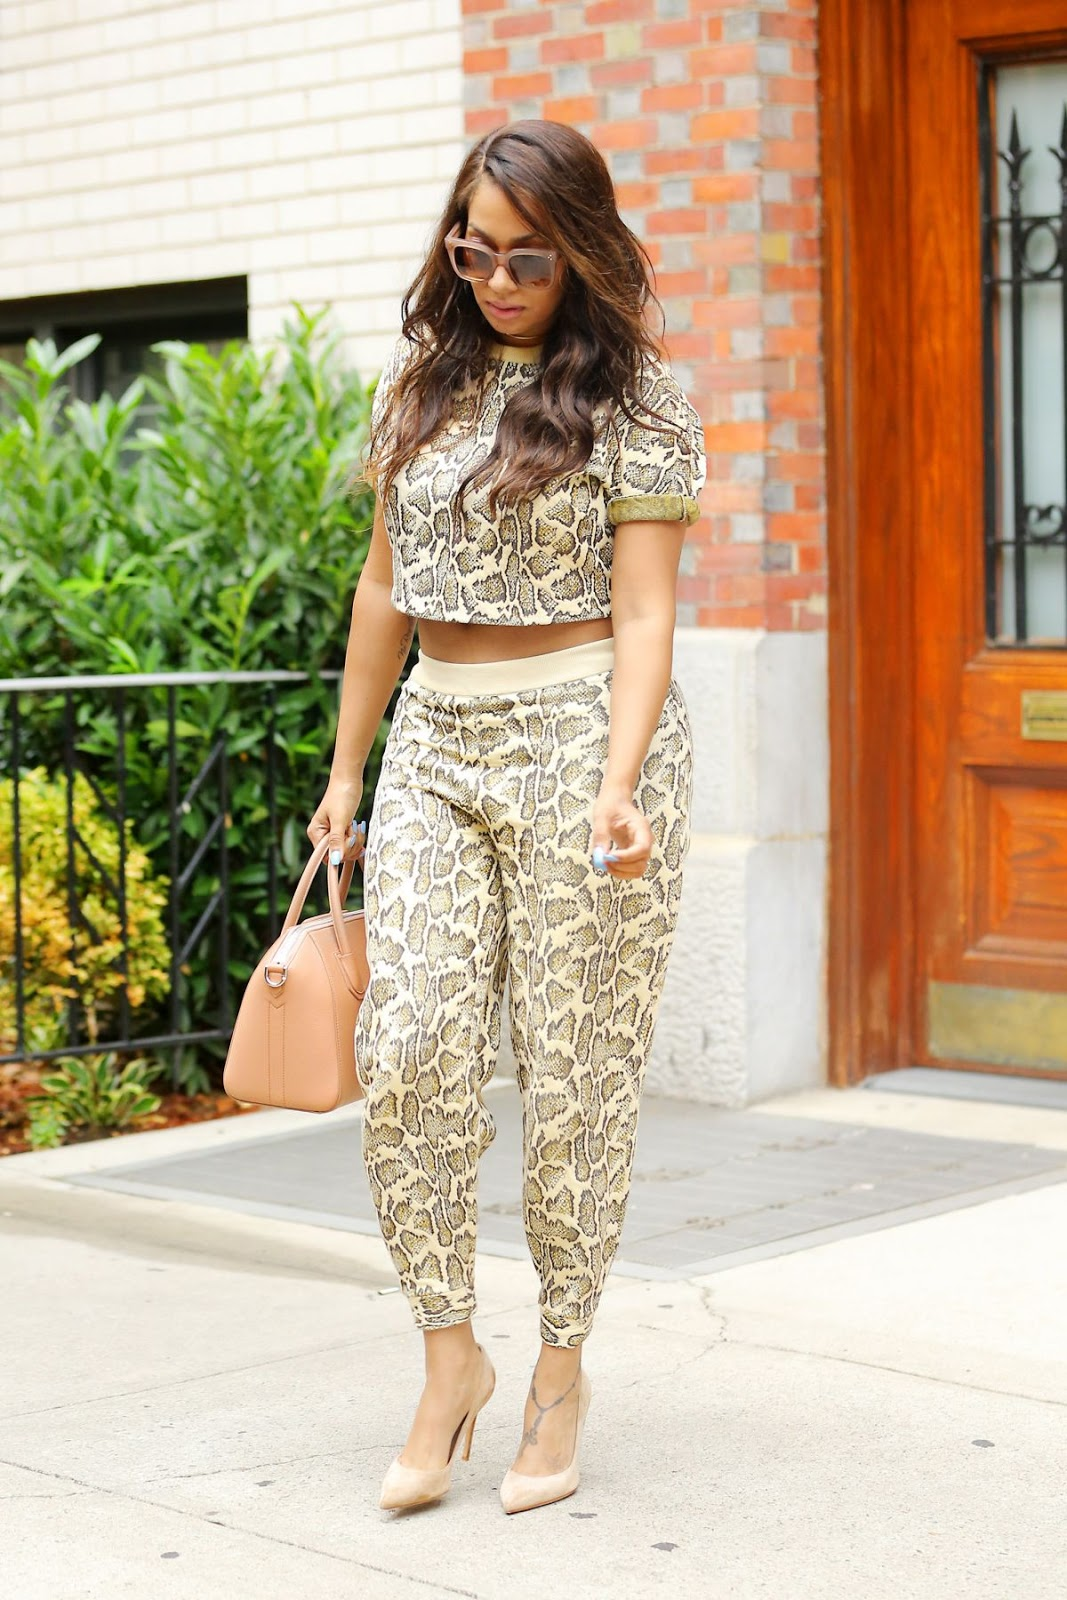 La La Anthony out and About in Manhattan